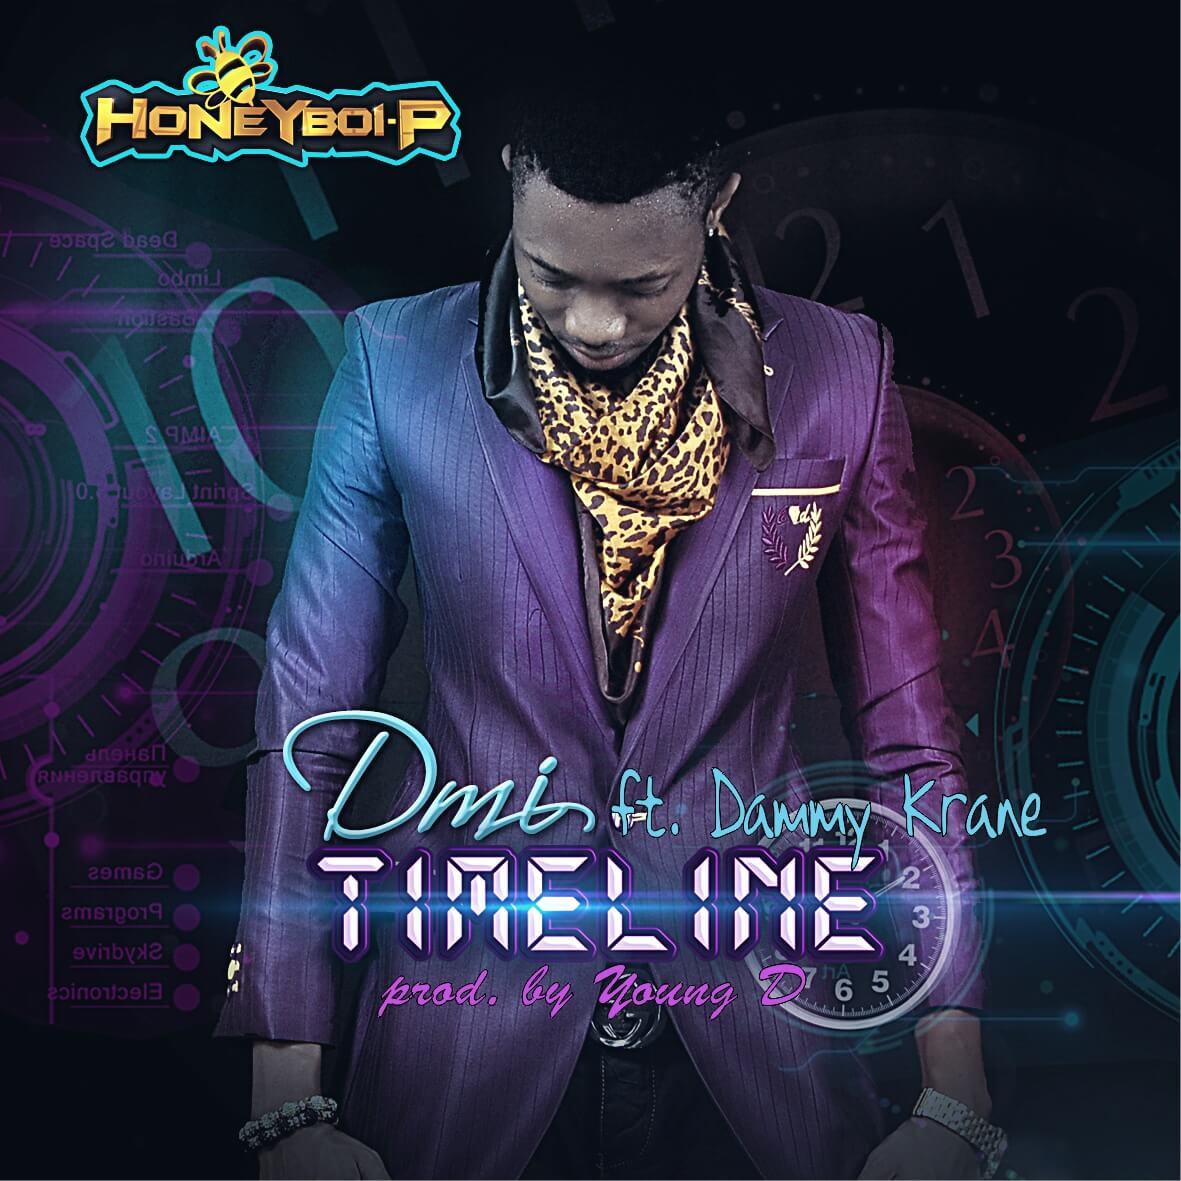 DMI ft. Dammy Krane - TIMELINE [prod. by Young D] Artwork